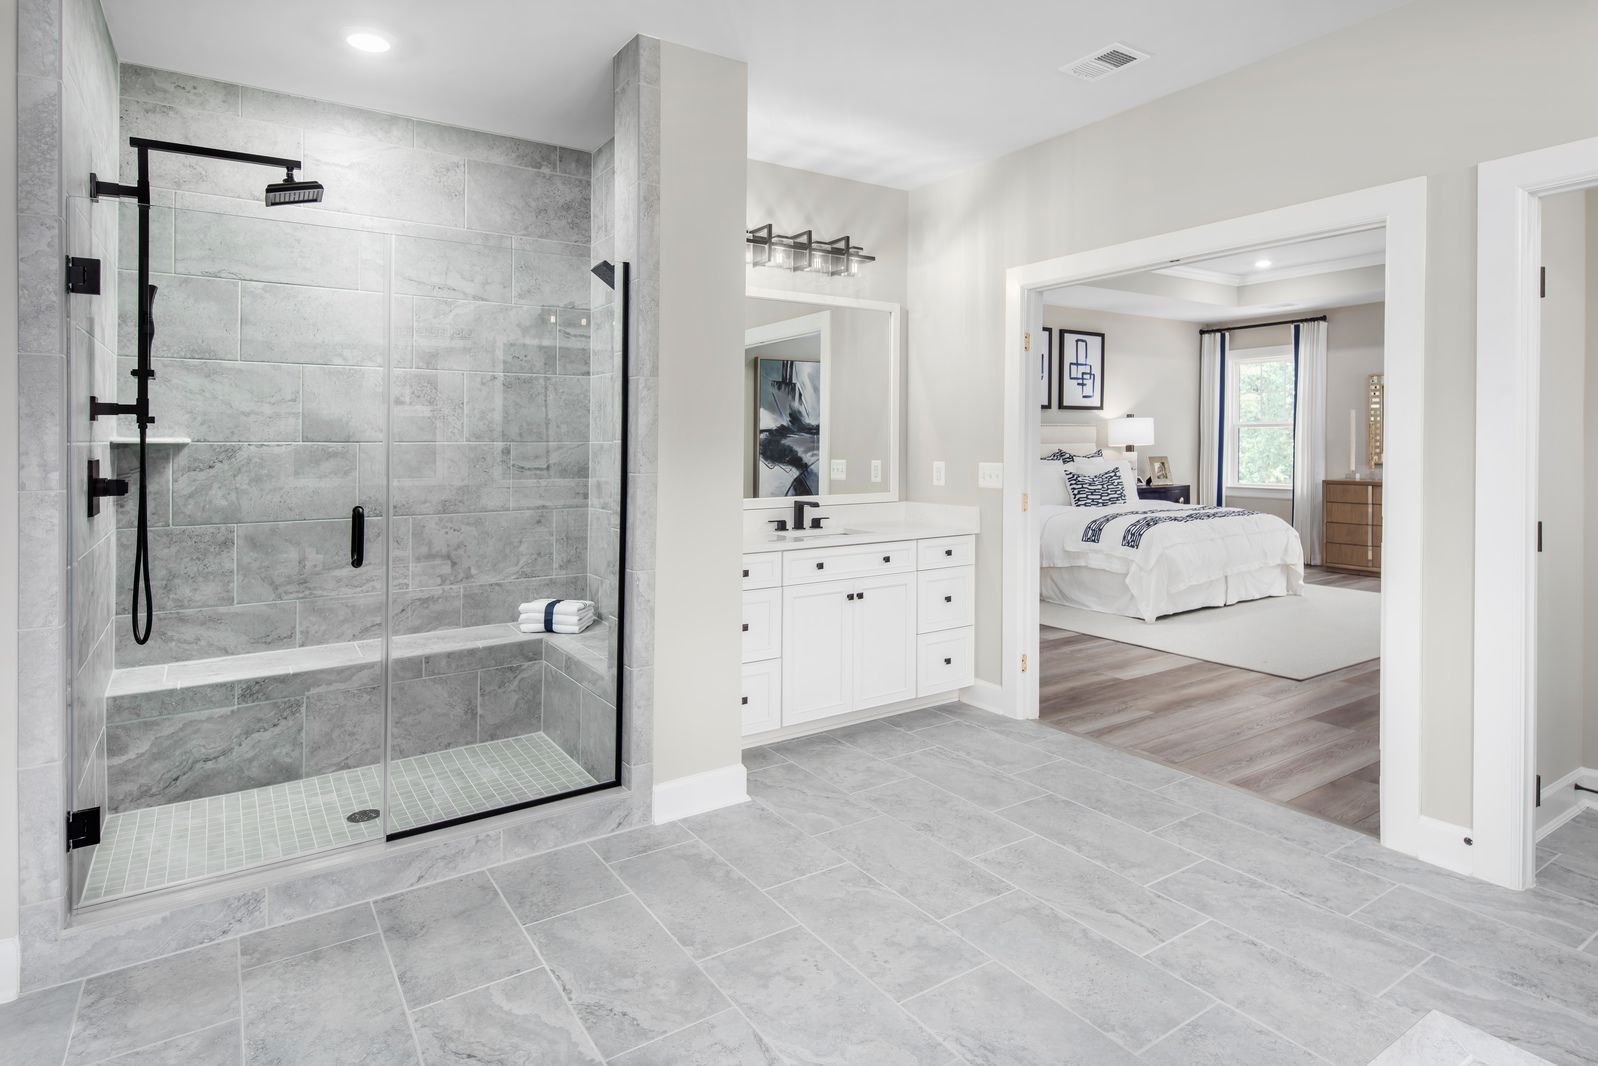 Bathroom featured in the Stratford Hall By NVHomes in Baltimore, MD